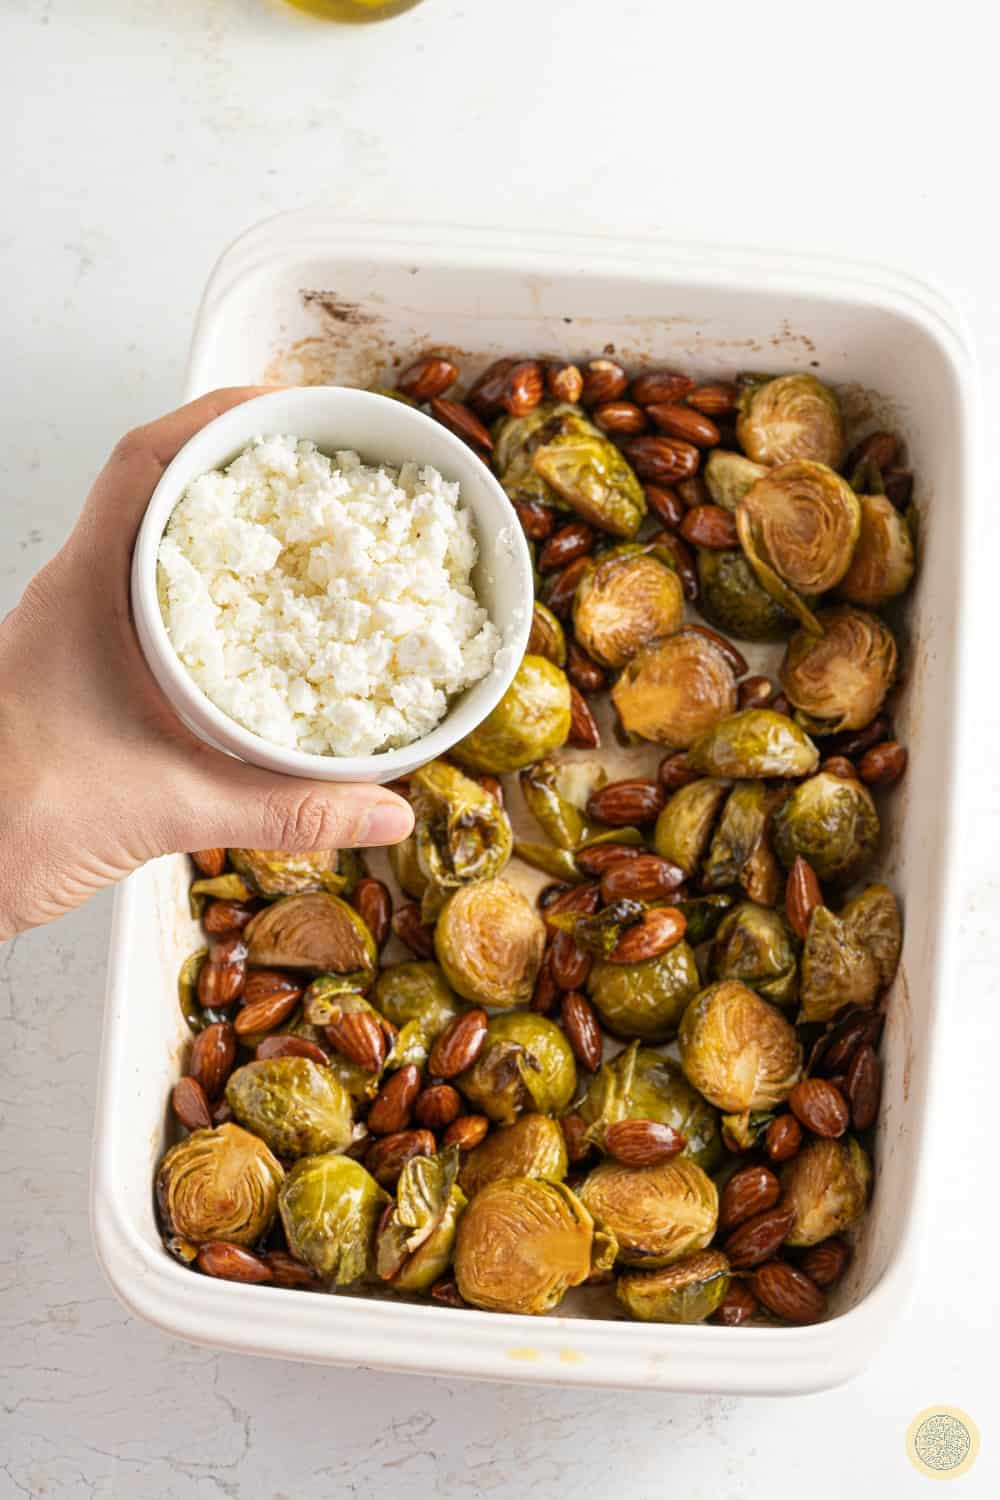 Mixing almonds and the brussels sprouts